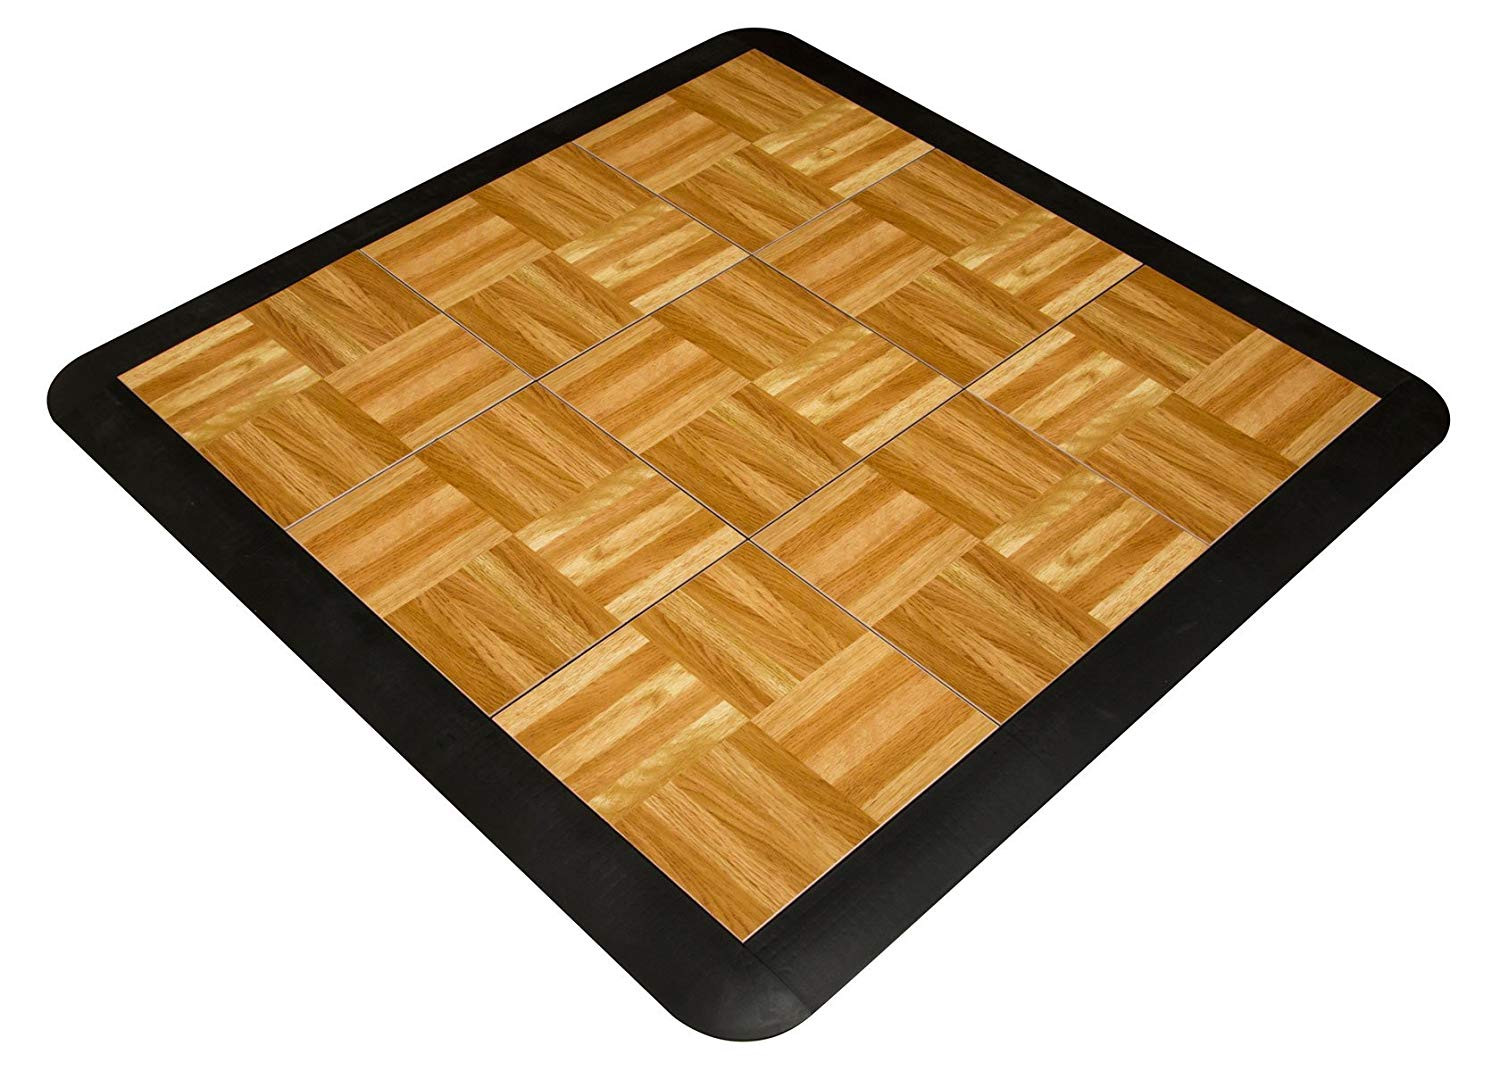 Hardwood Floor Cost for 1500 Sq Ft Of Snapfloors 3x3oakfloor Modular Dance Floor Kit 3 X 3 Oak 21 Regarding Snapfloors 3x3oakfloor Modular Dance Floor Kit 3 X 3 Oak 21 Piece Amazon Com